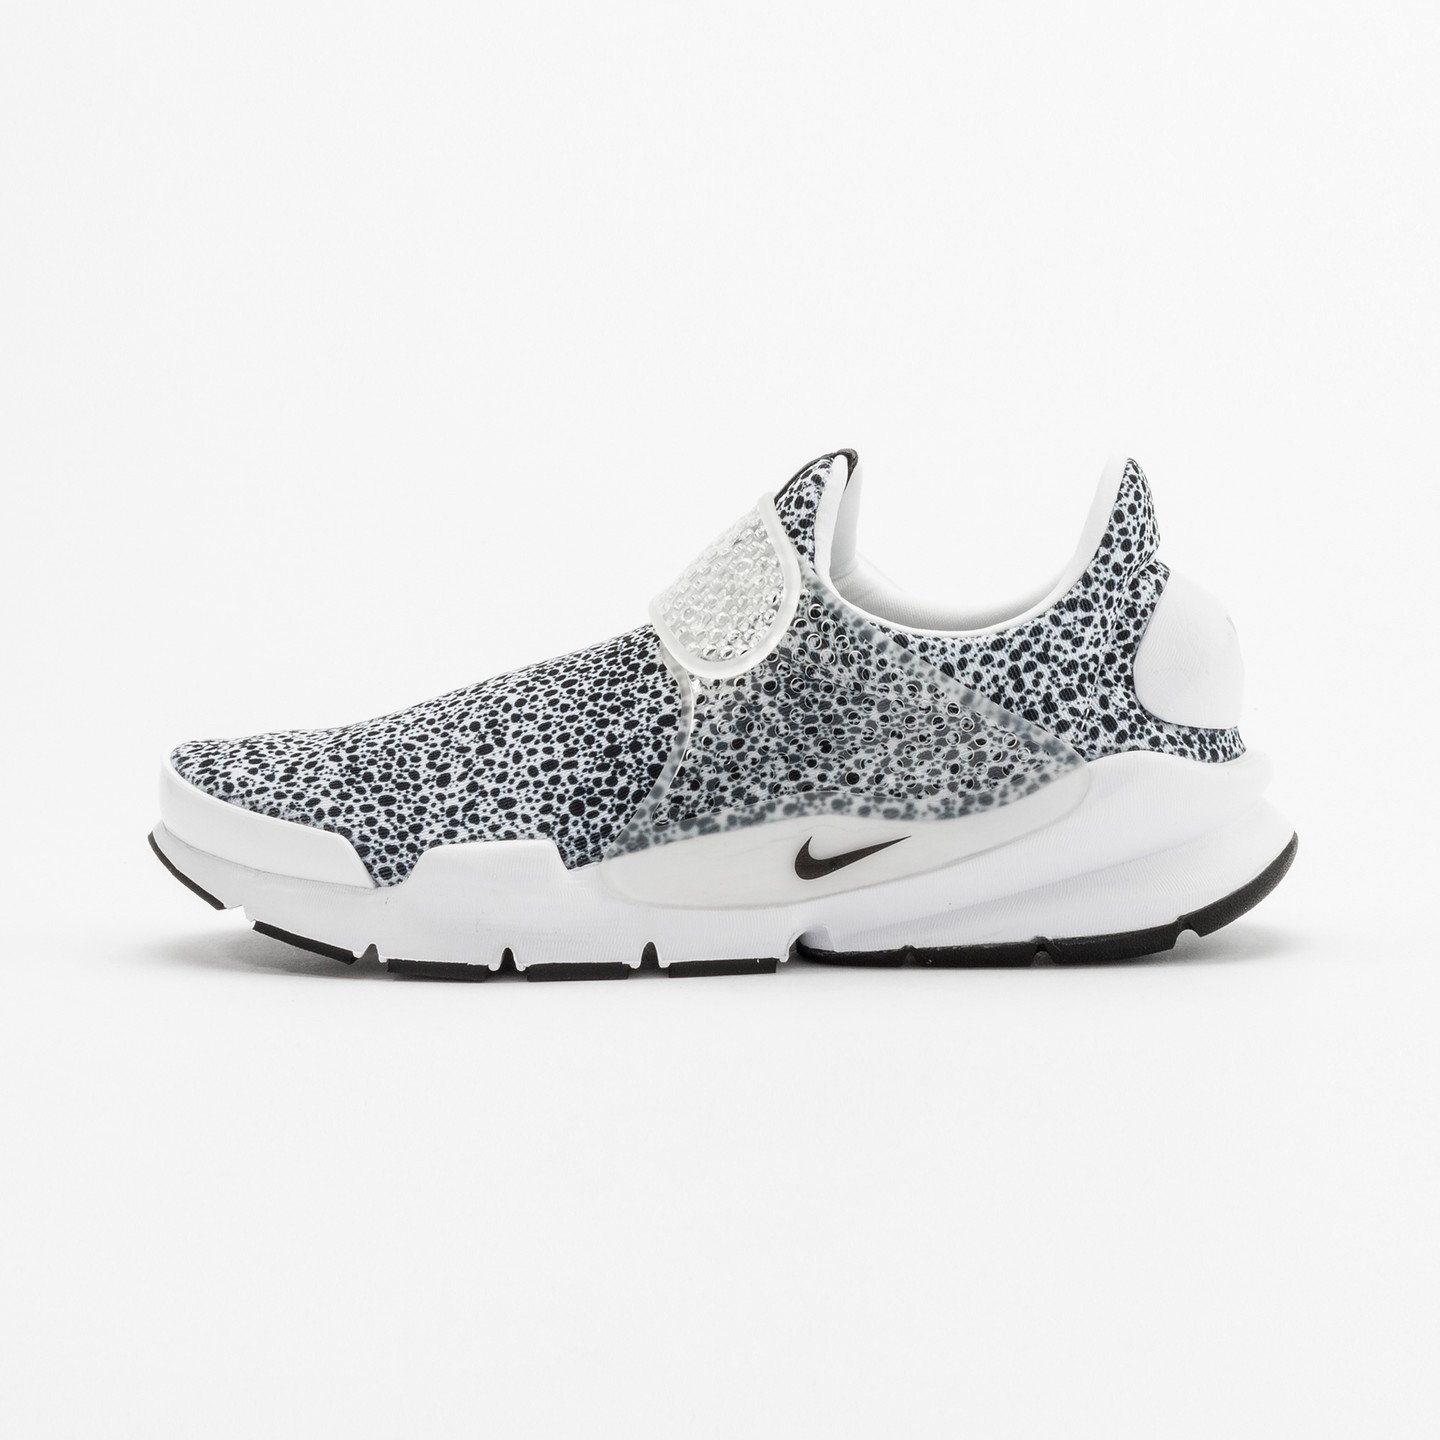 Nike Sock Dart QS 'Safari Pack' White / Black 942198-100